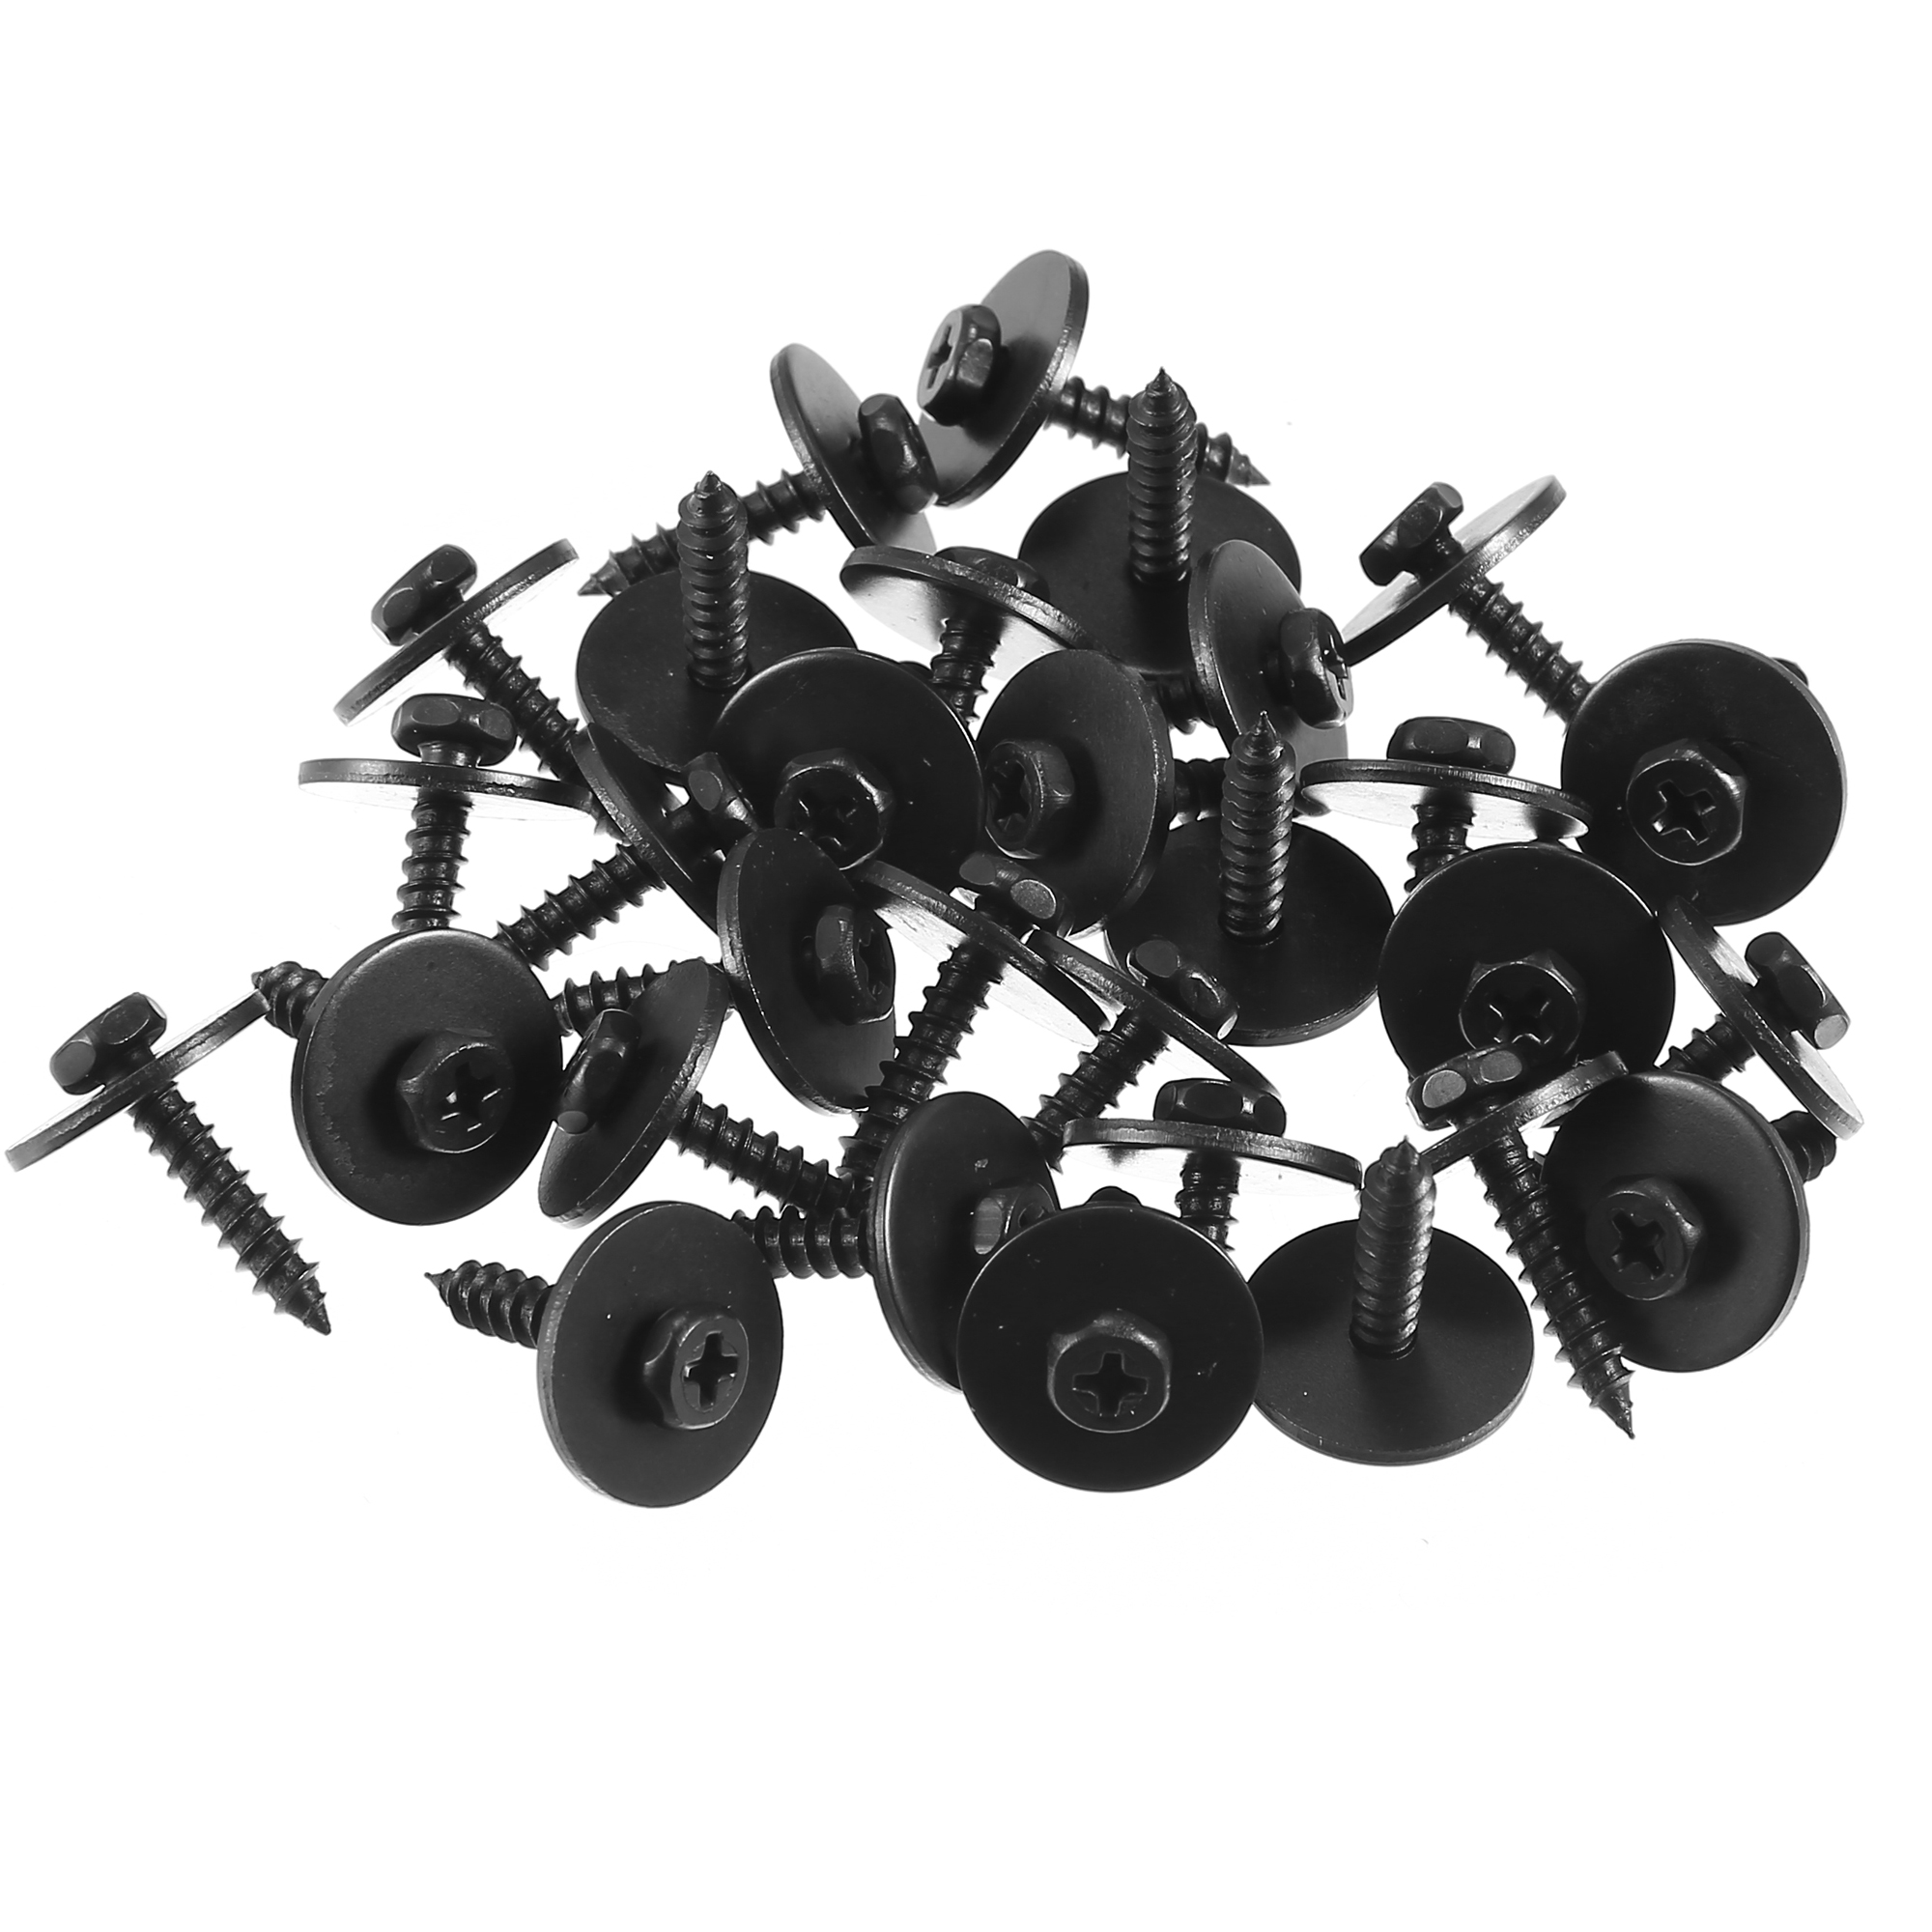 100Pcs Metal Car Screw Body Fender Bumper Retainer Clips